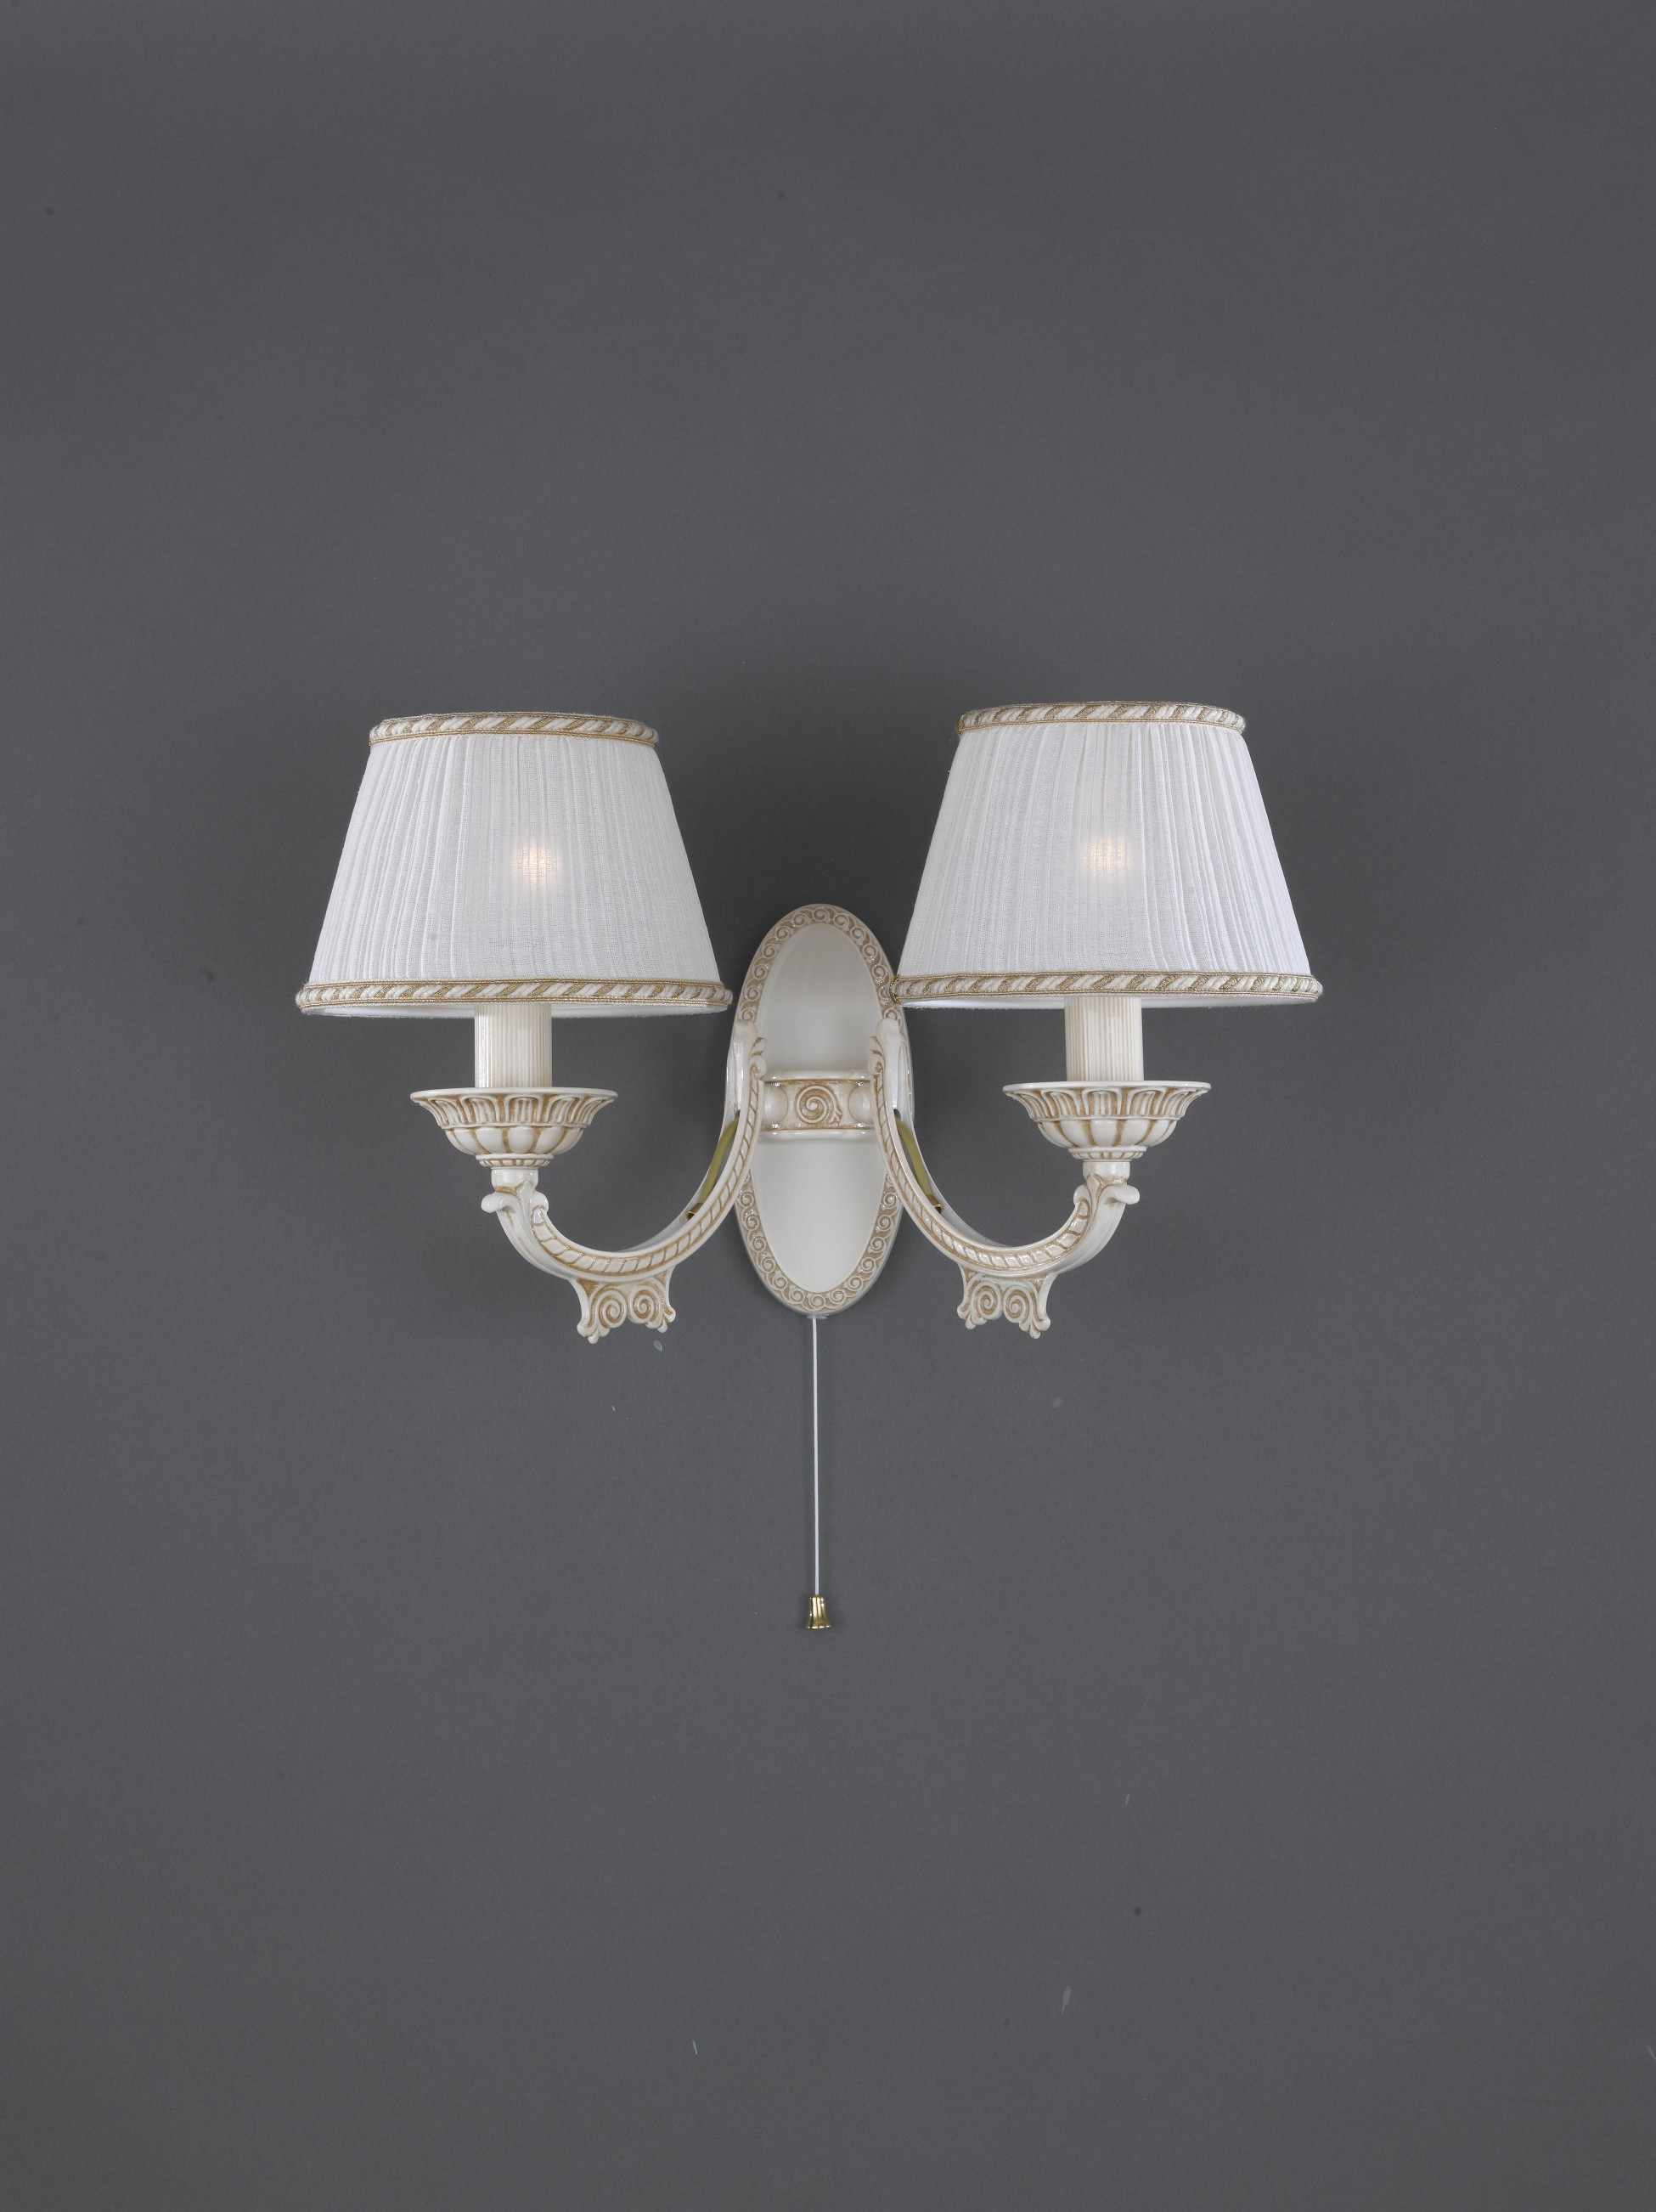 2 Lights Old White Brass Wall Sconce With Lamp Shades